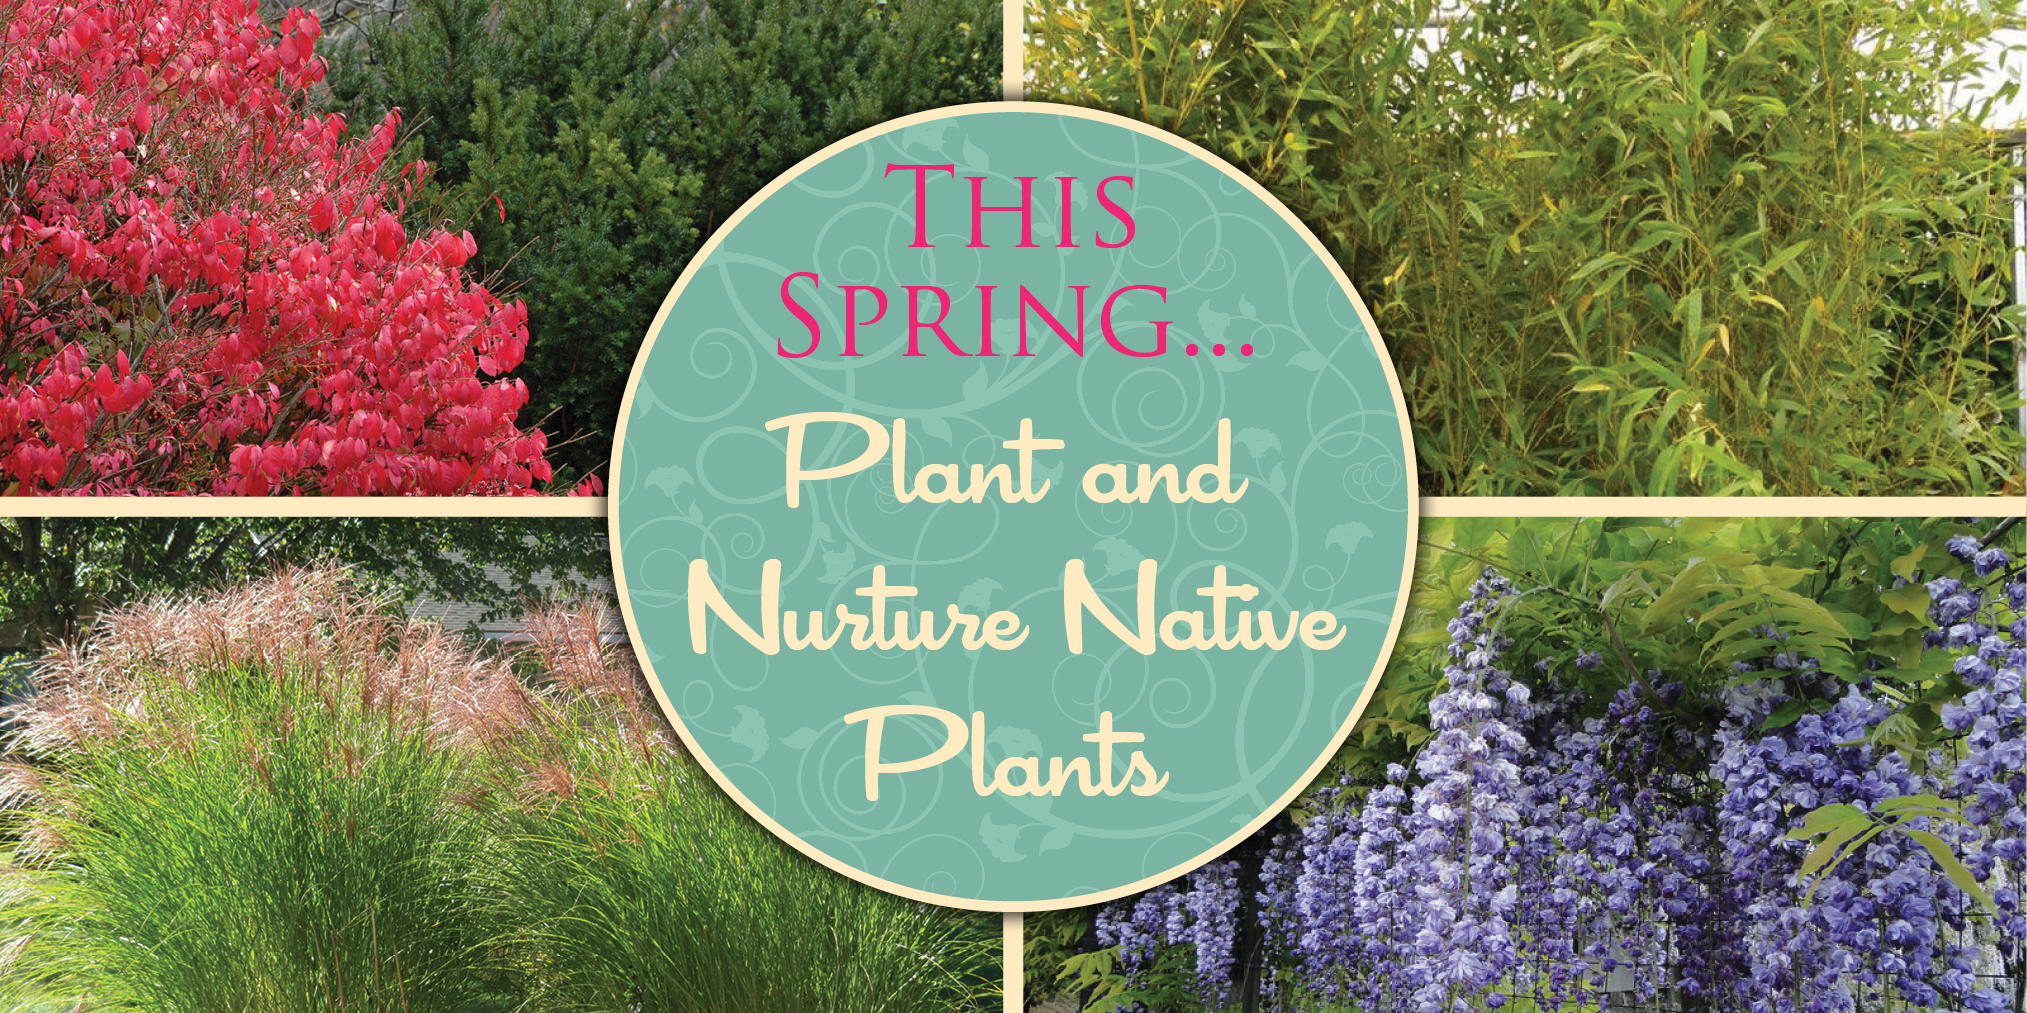 This Spring... Plant and Nurture Native Plants